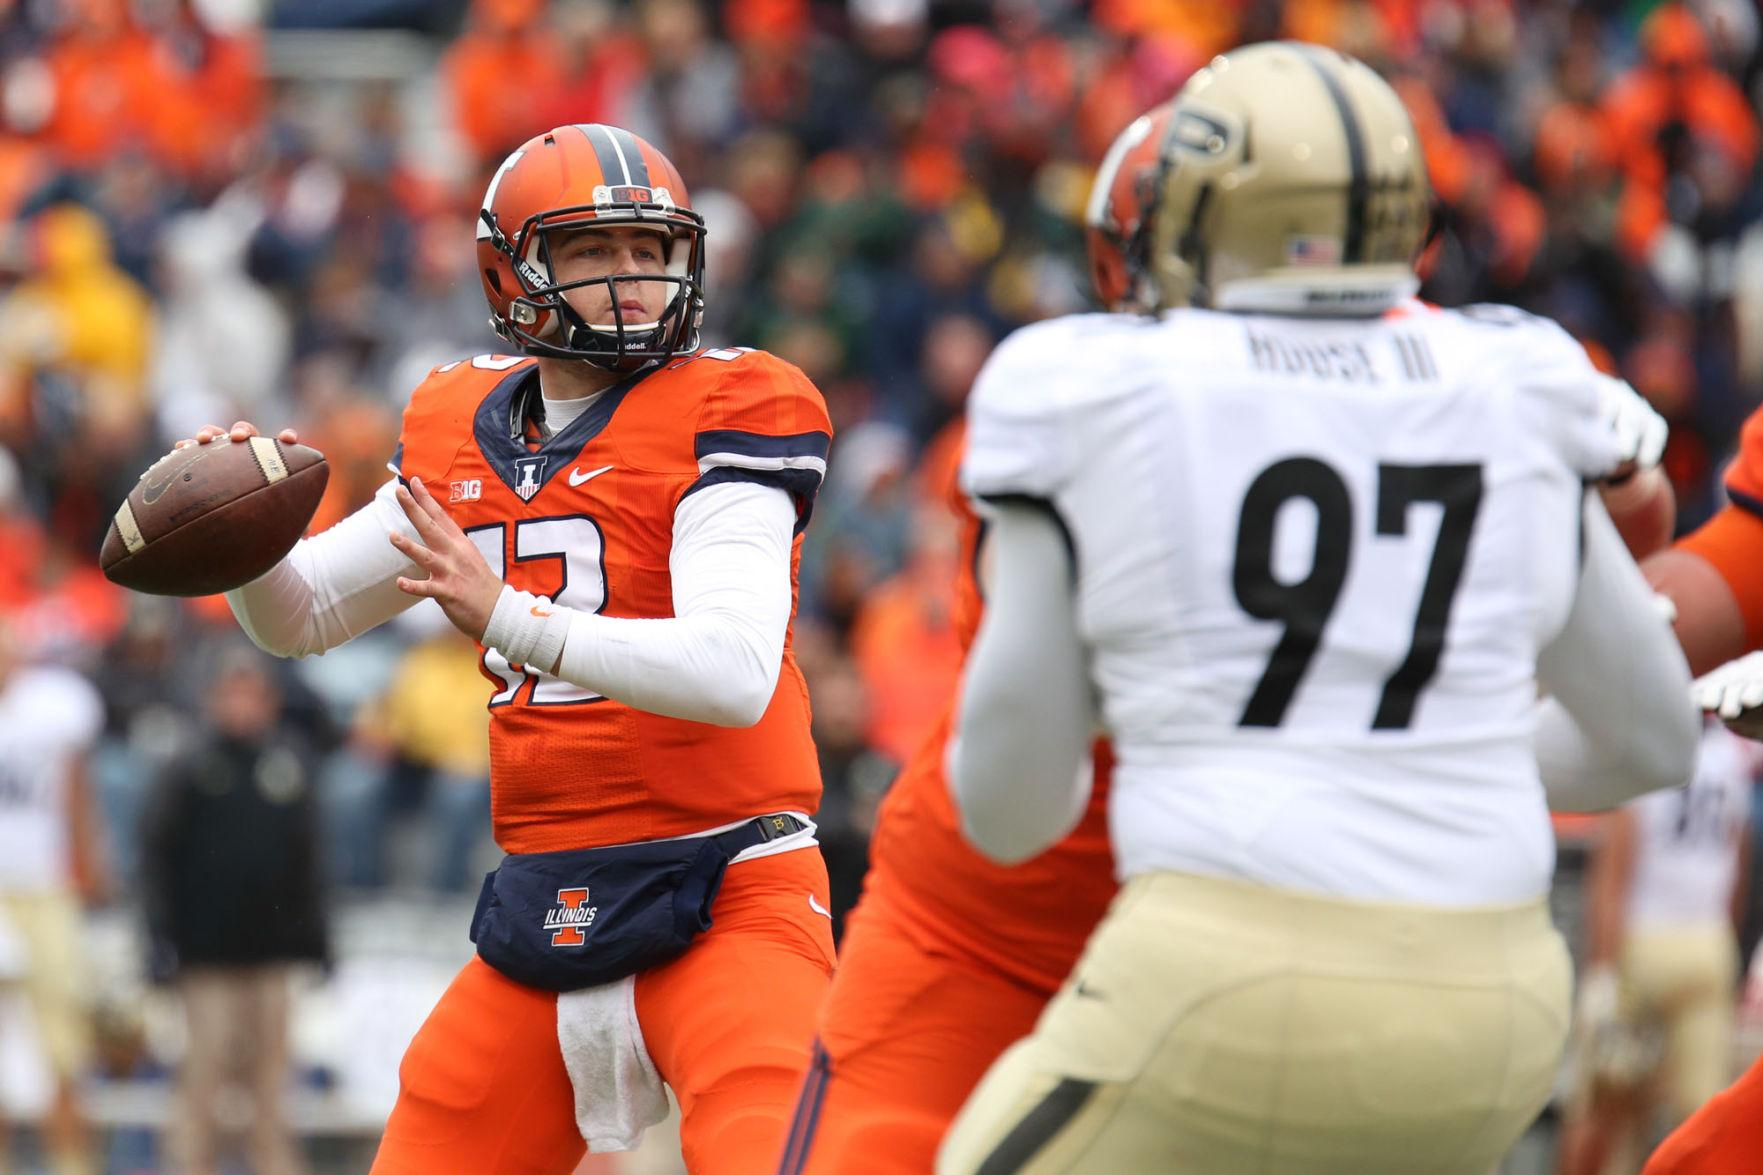 Illinois' Wes Lunt (12) attempts a pass during the game against Purdue at Memorial Stadium on Saturday Oct. 4.